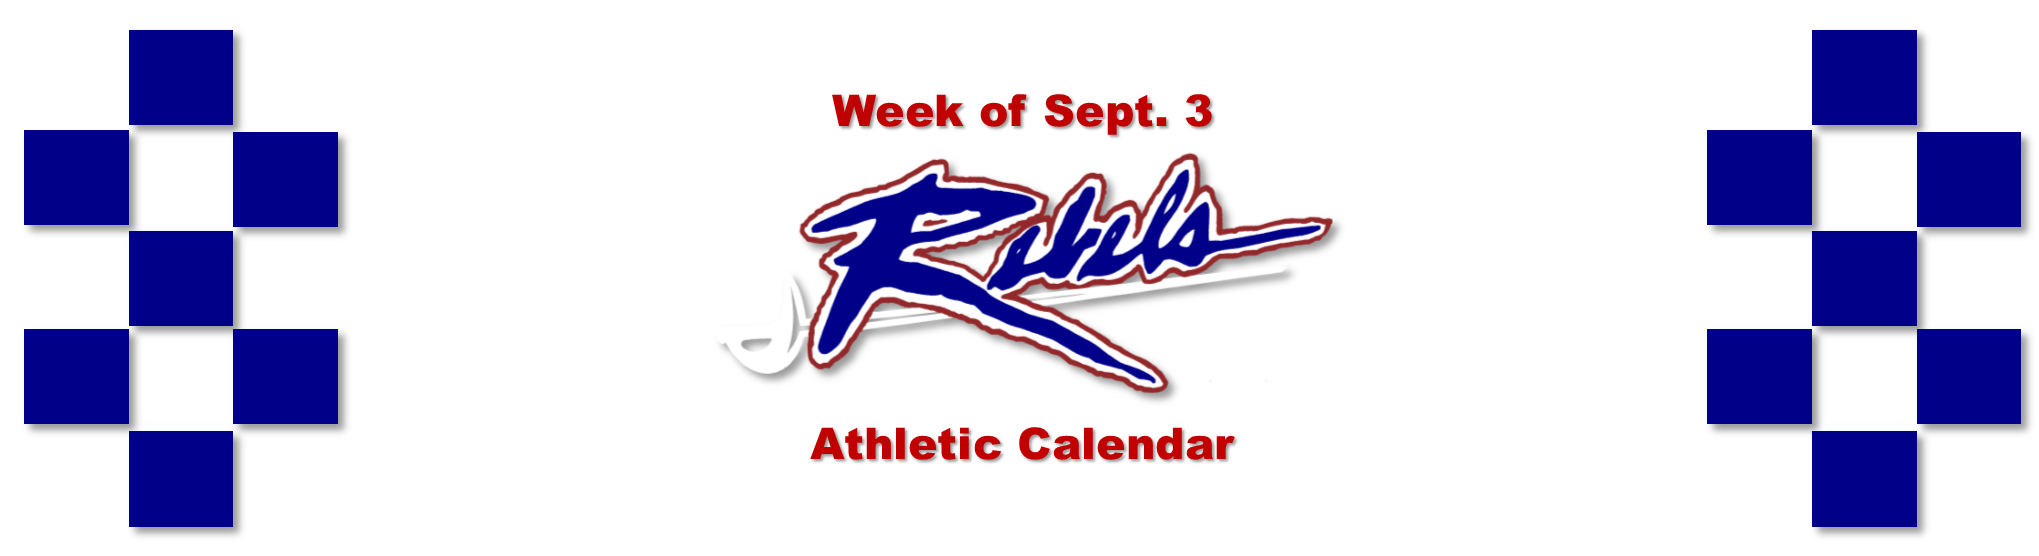 Week of Sept 3 Athletic Events